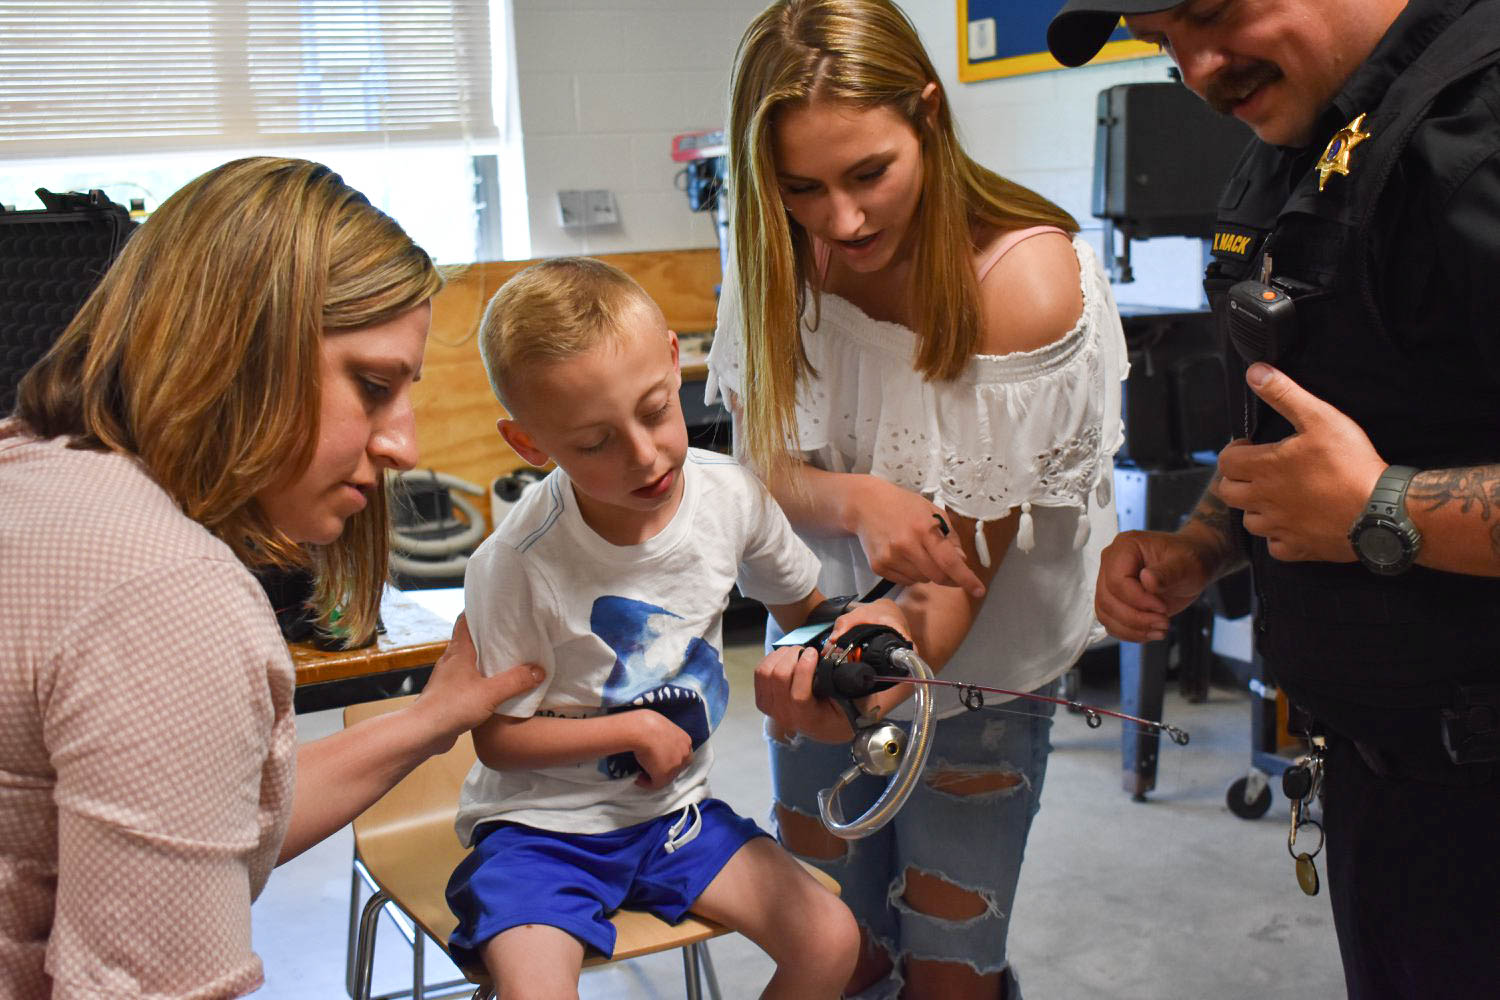 A perfect fit. Ezra's parents watch as freshman Chelsea Asquith puts the fishing rod in Ezra's hand for him to test out the feel of it. PHOTO KAITLIN MILLER.